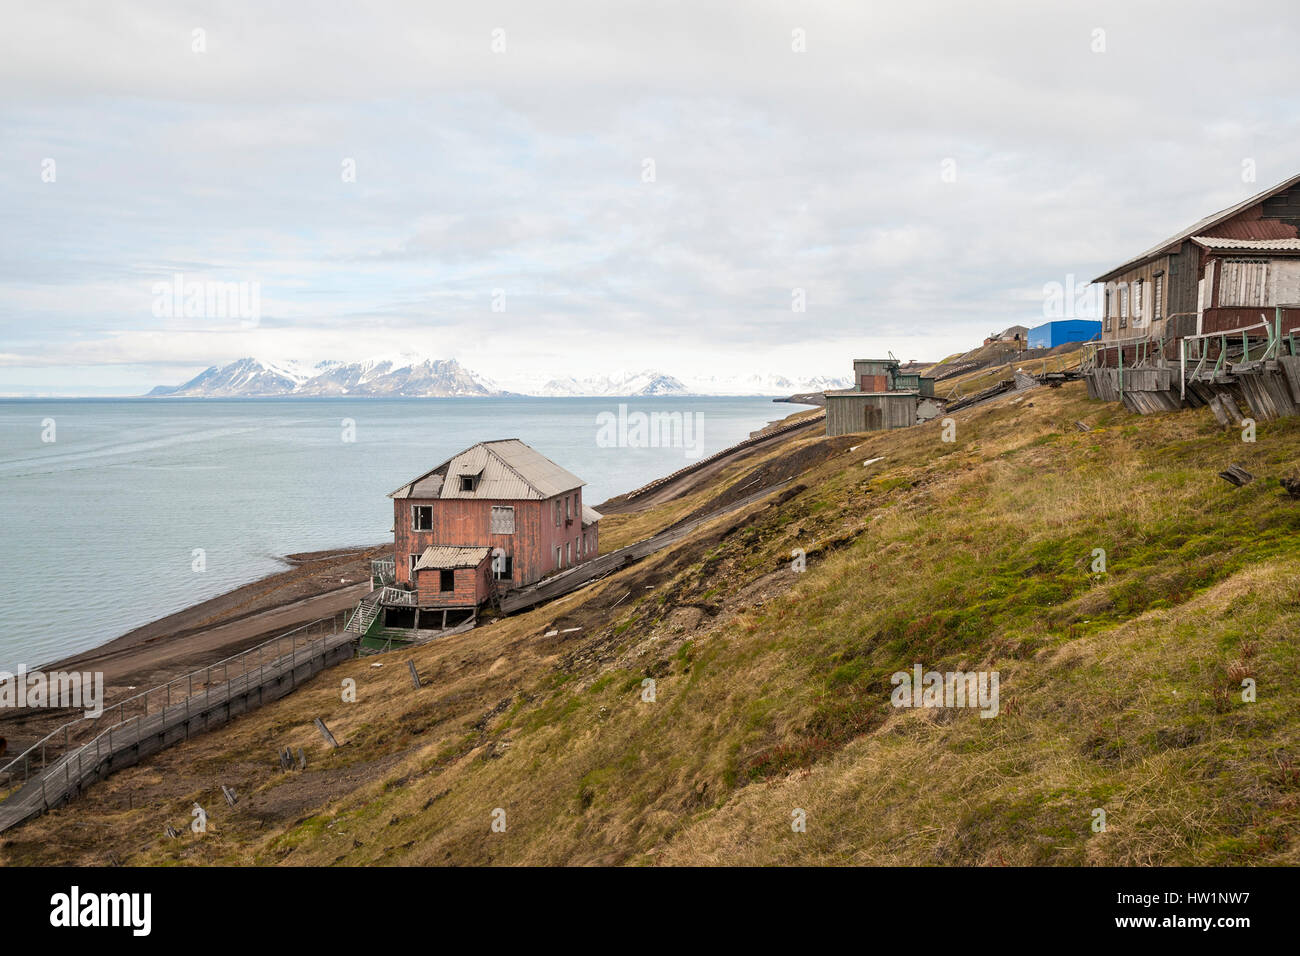 norway svalbard barentsburg stockfotos norway svalbard barentsburg bilder alamy. Black Bedroom Furniture Sets. Home Design Ideas